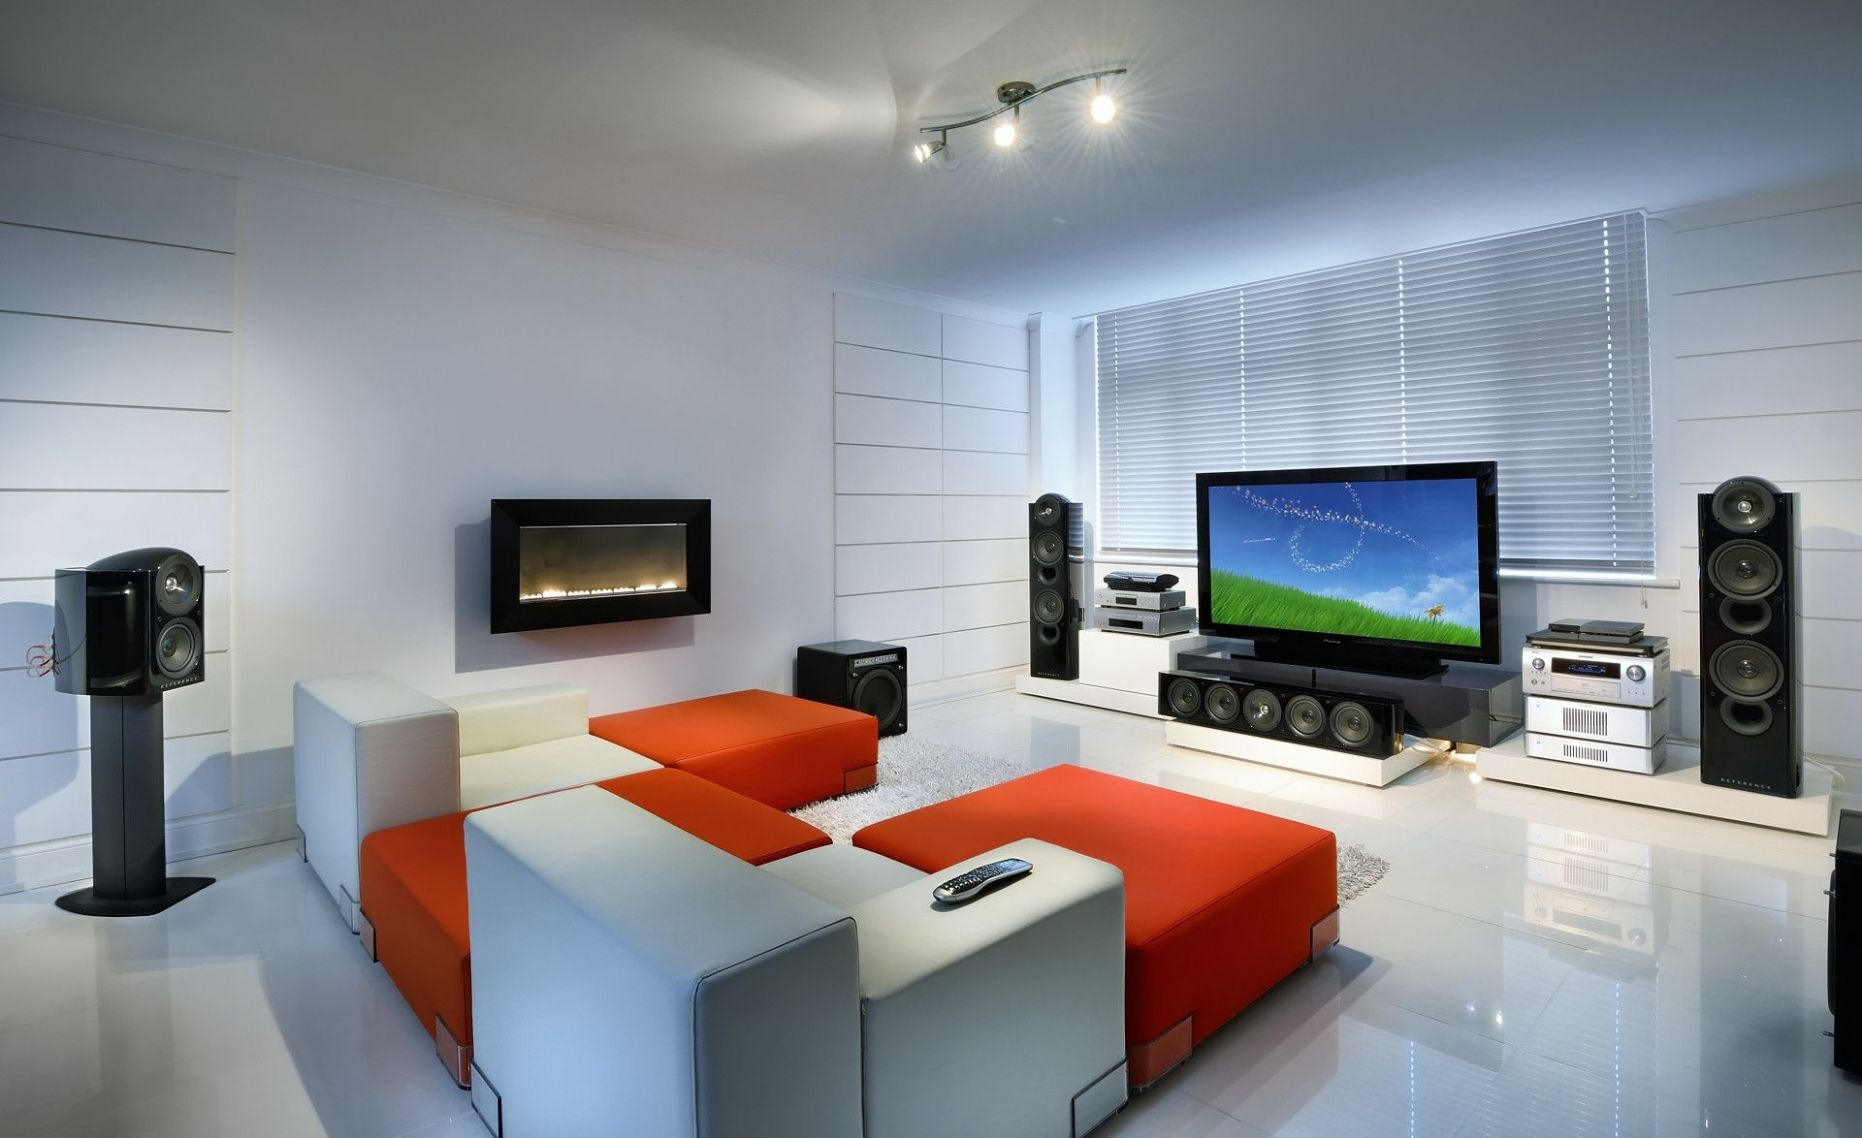 Re: Show us your gaming setup! | Living room tv cabinet designs ...